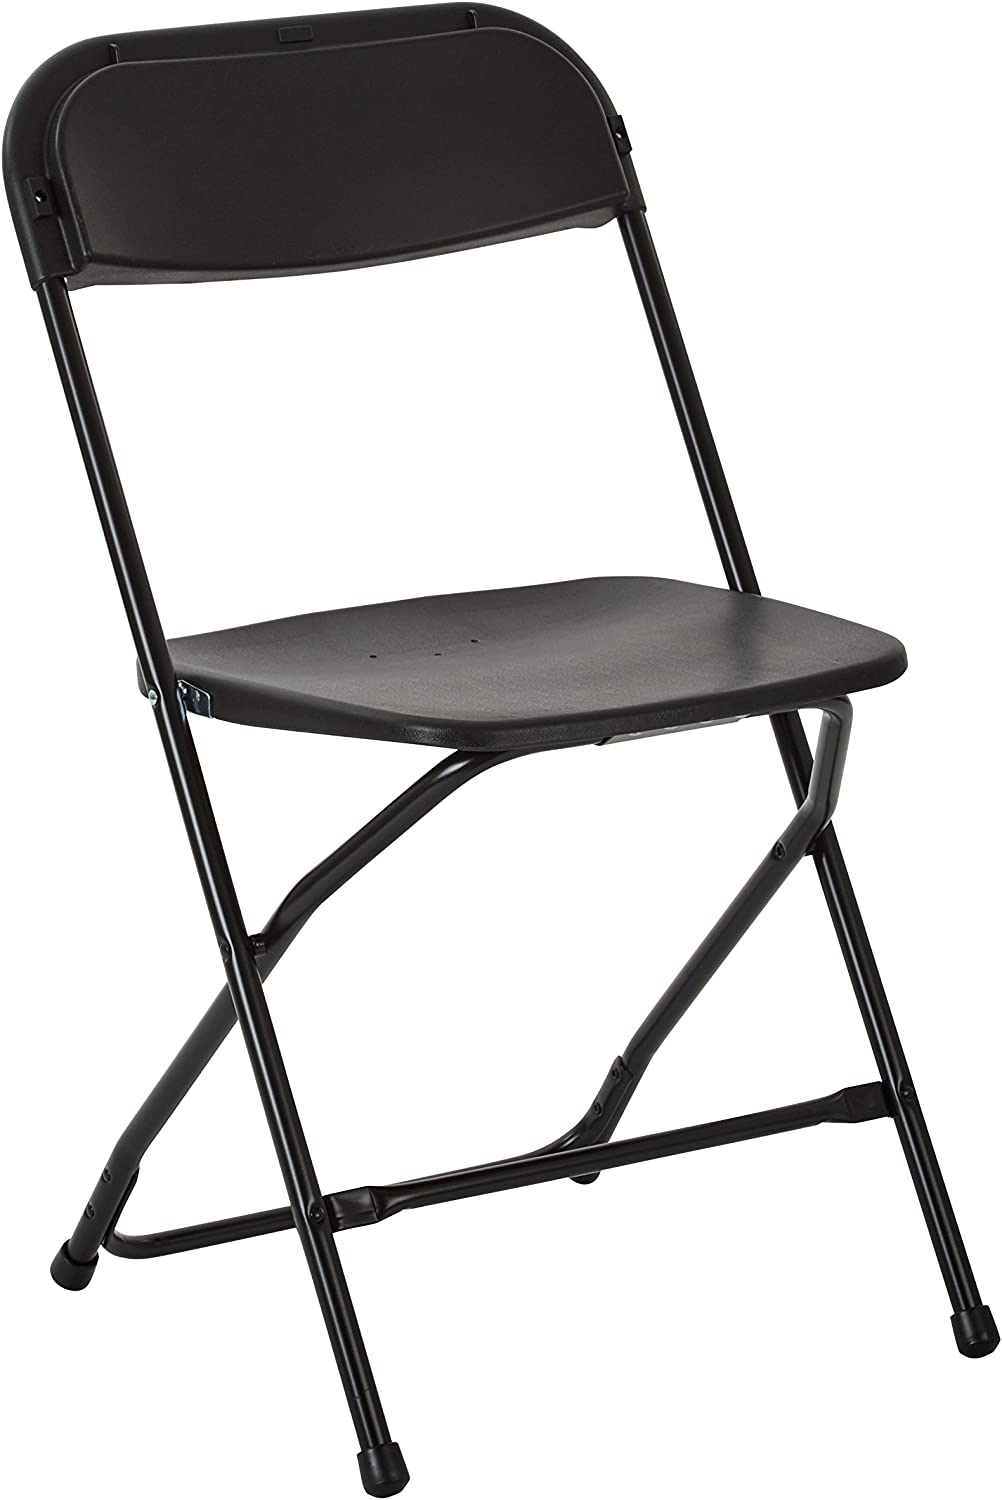 Work Smart RC883A4 Plastic Seat and Back Stacking Folding Chairs with Steel Frame, 4 Pack, Black